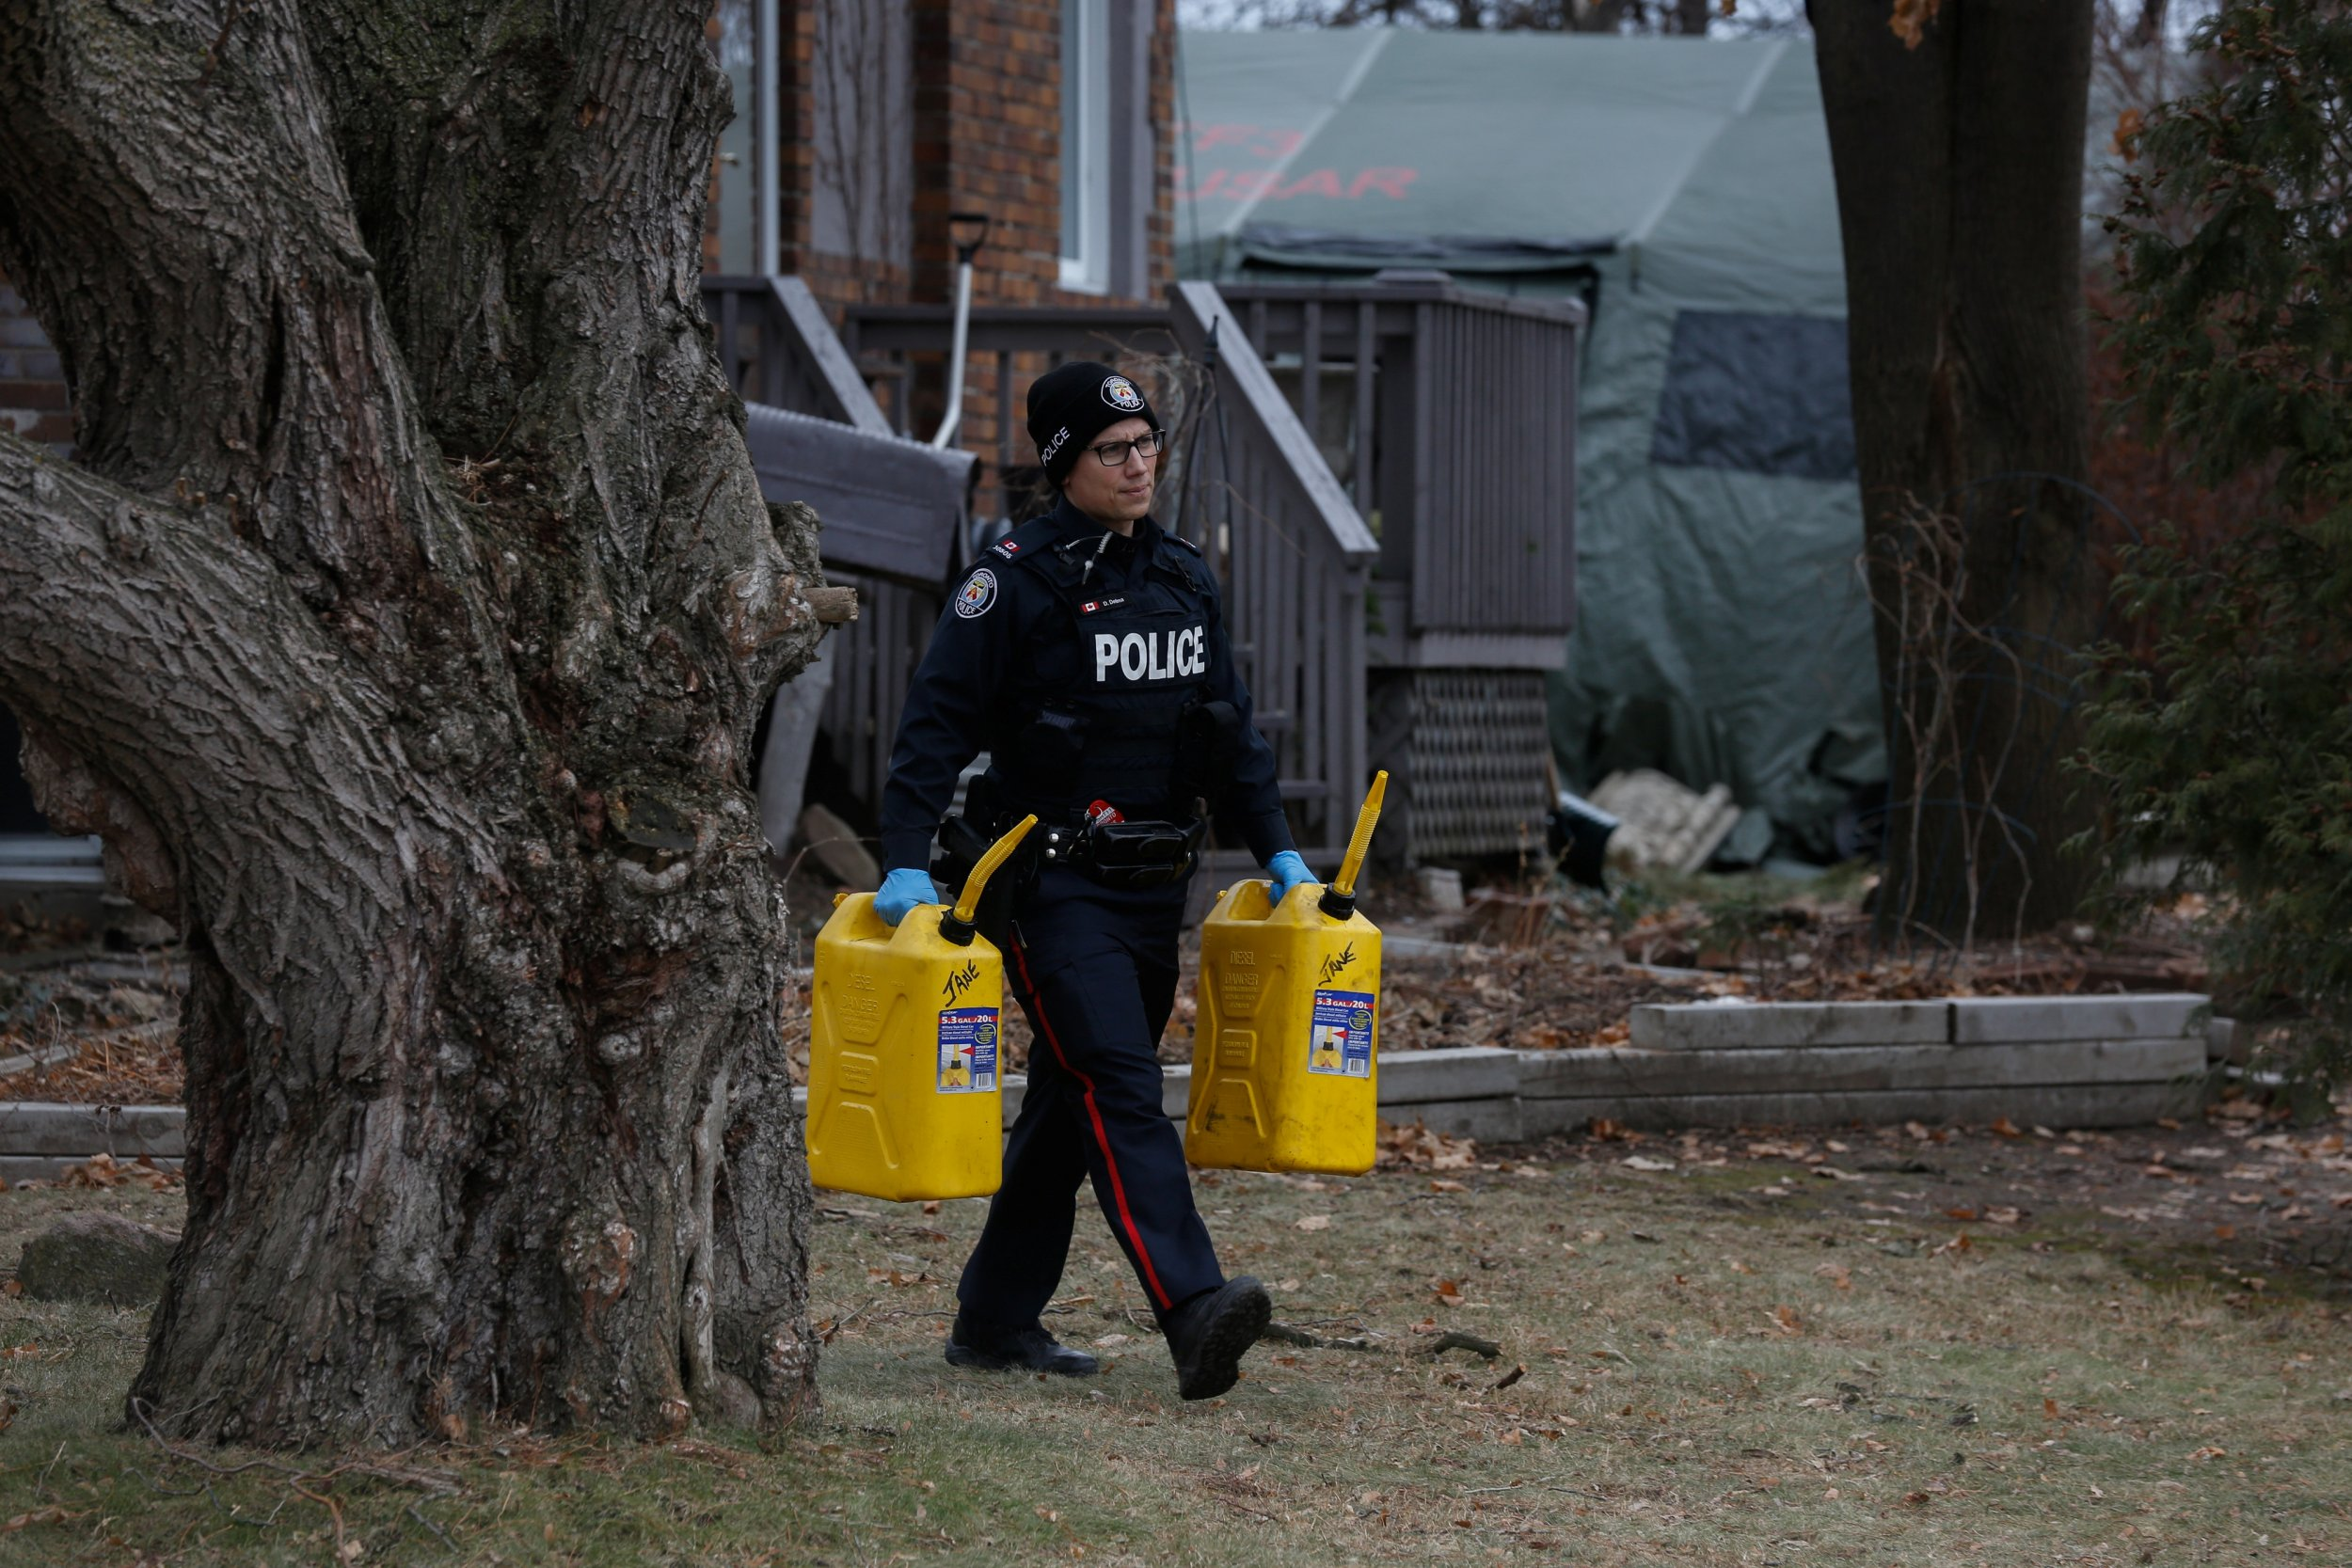 Serial Killer Suspect in Canada Planted Bodies Below Flower Bed